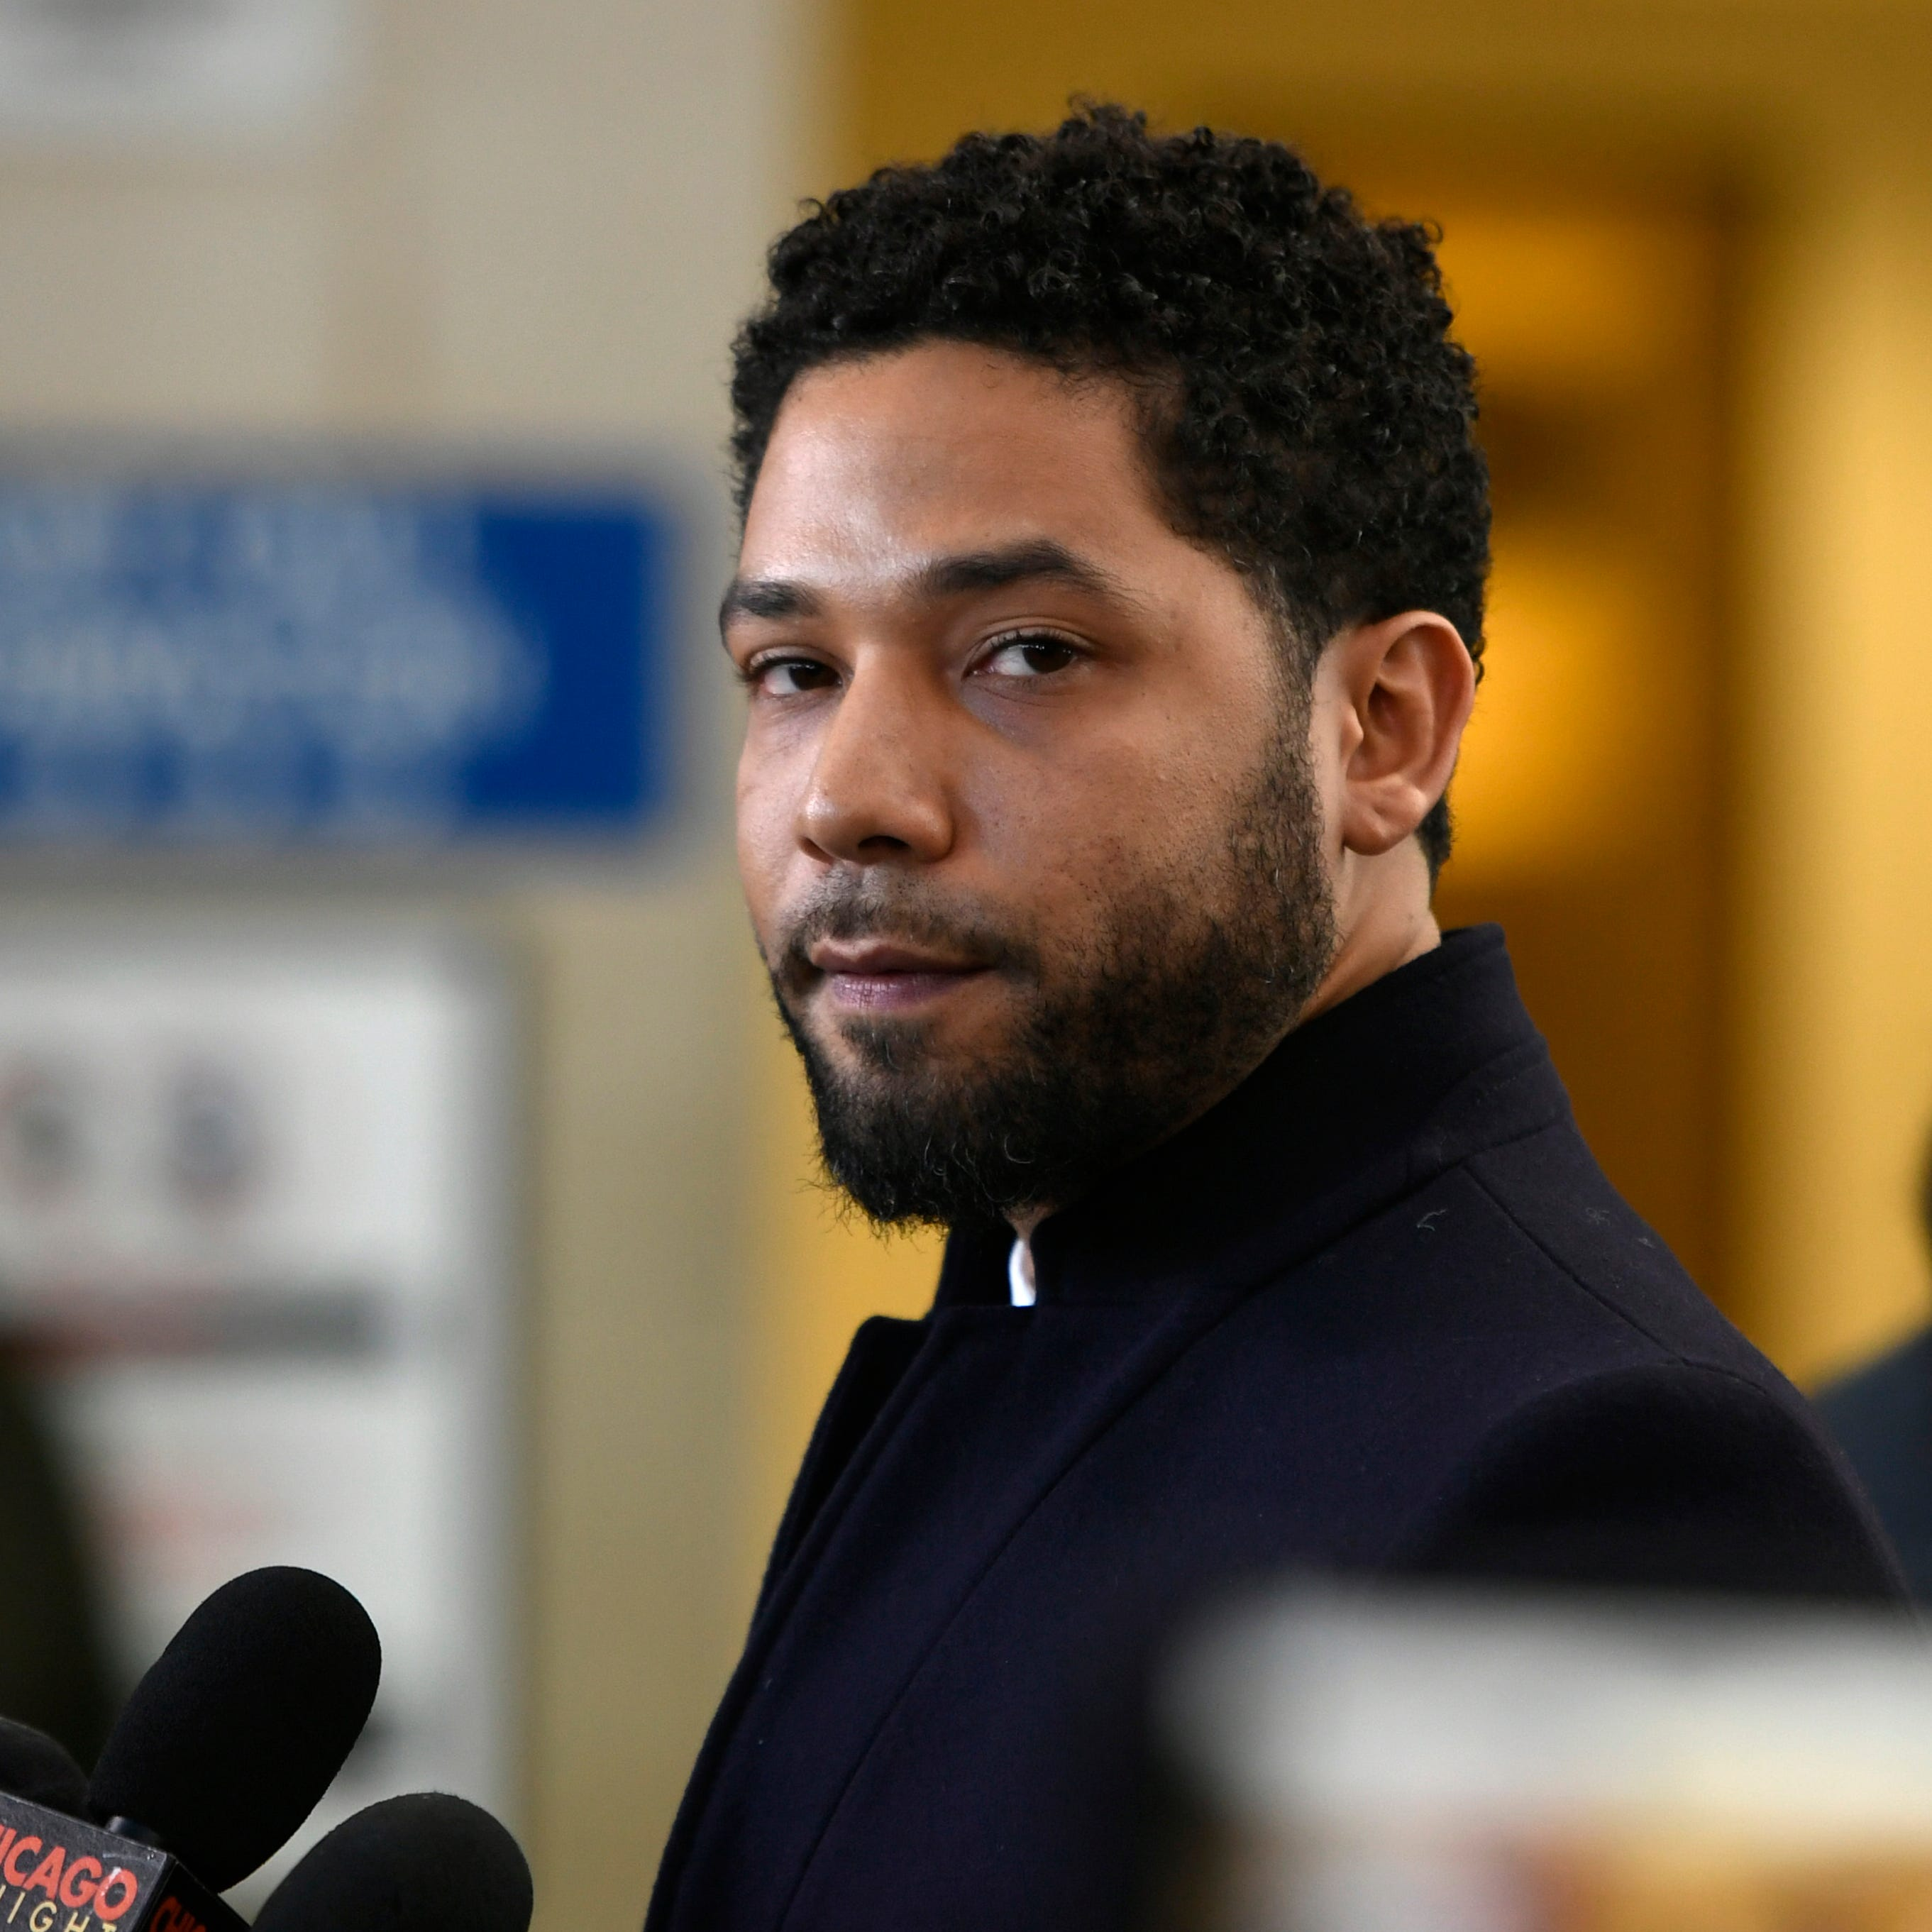 Prosecutors abandon criminal case against Jussie Smollett